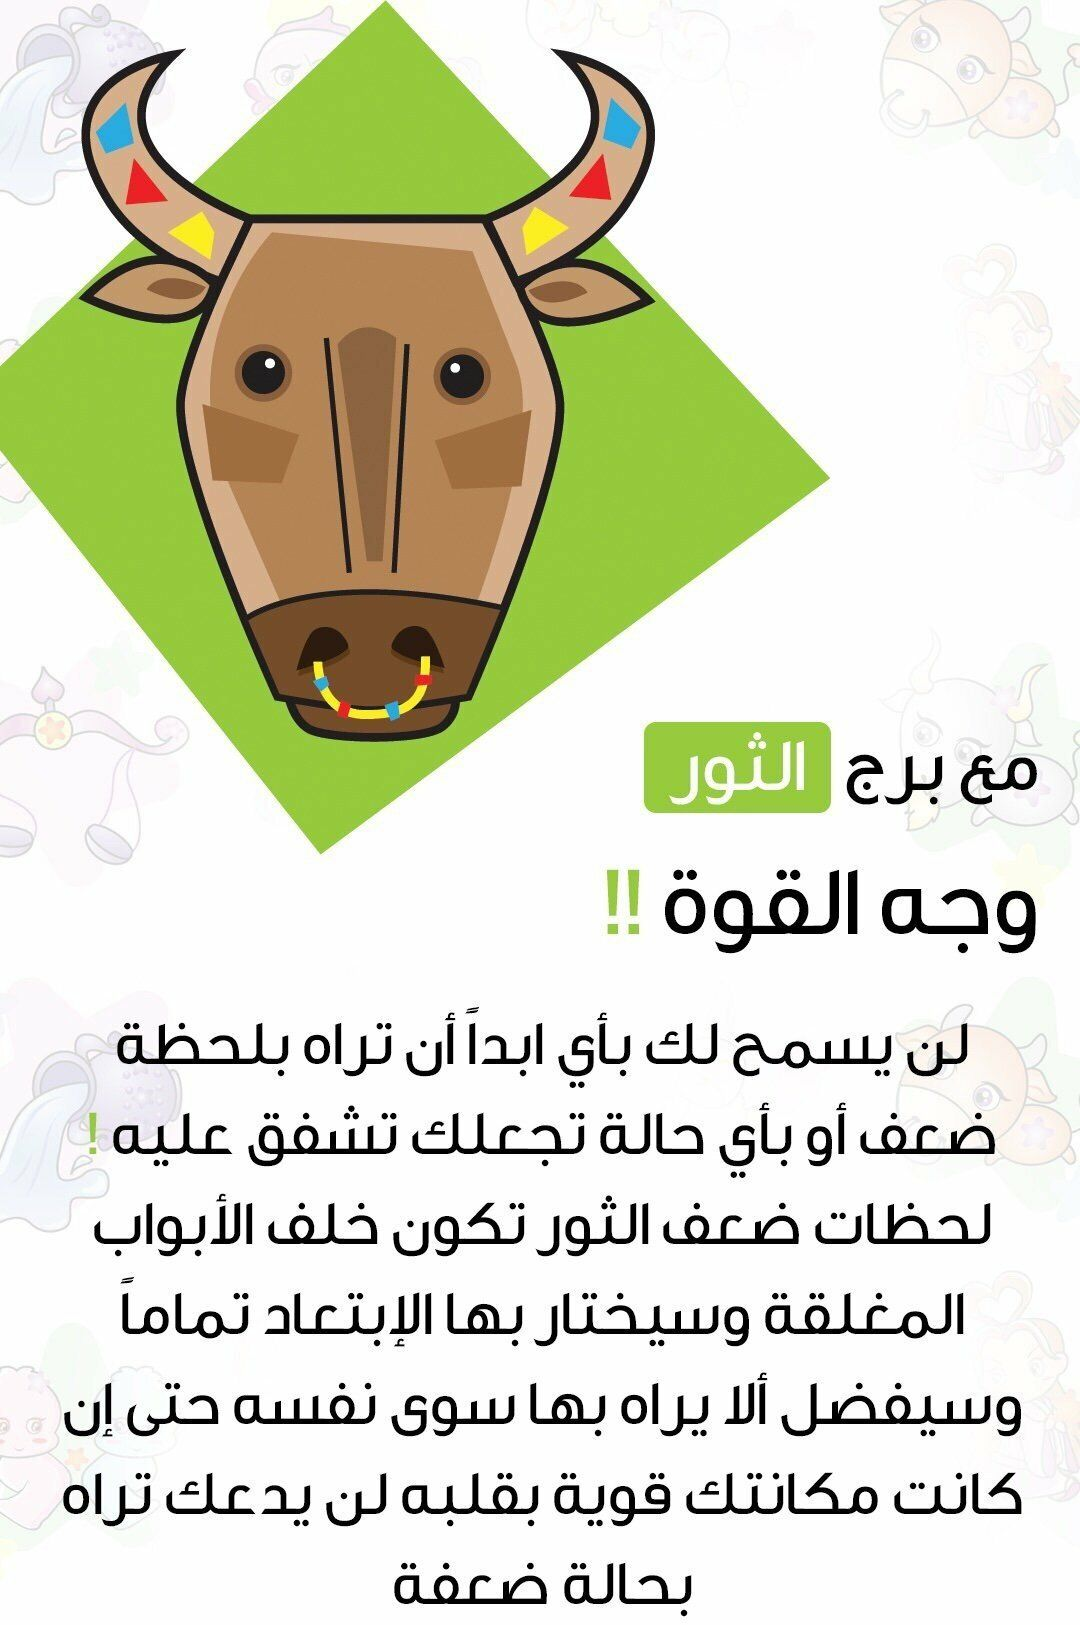 Pin By Shayoom On برج الثور In 2021 Funny Reaction Pictures Horoscope Reaction Pictures